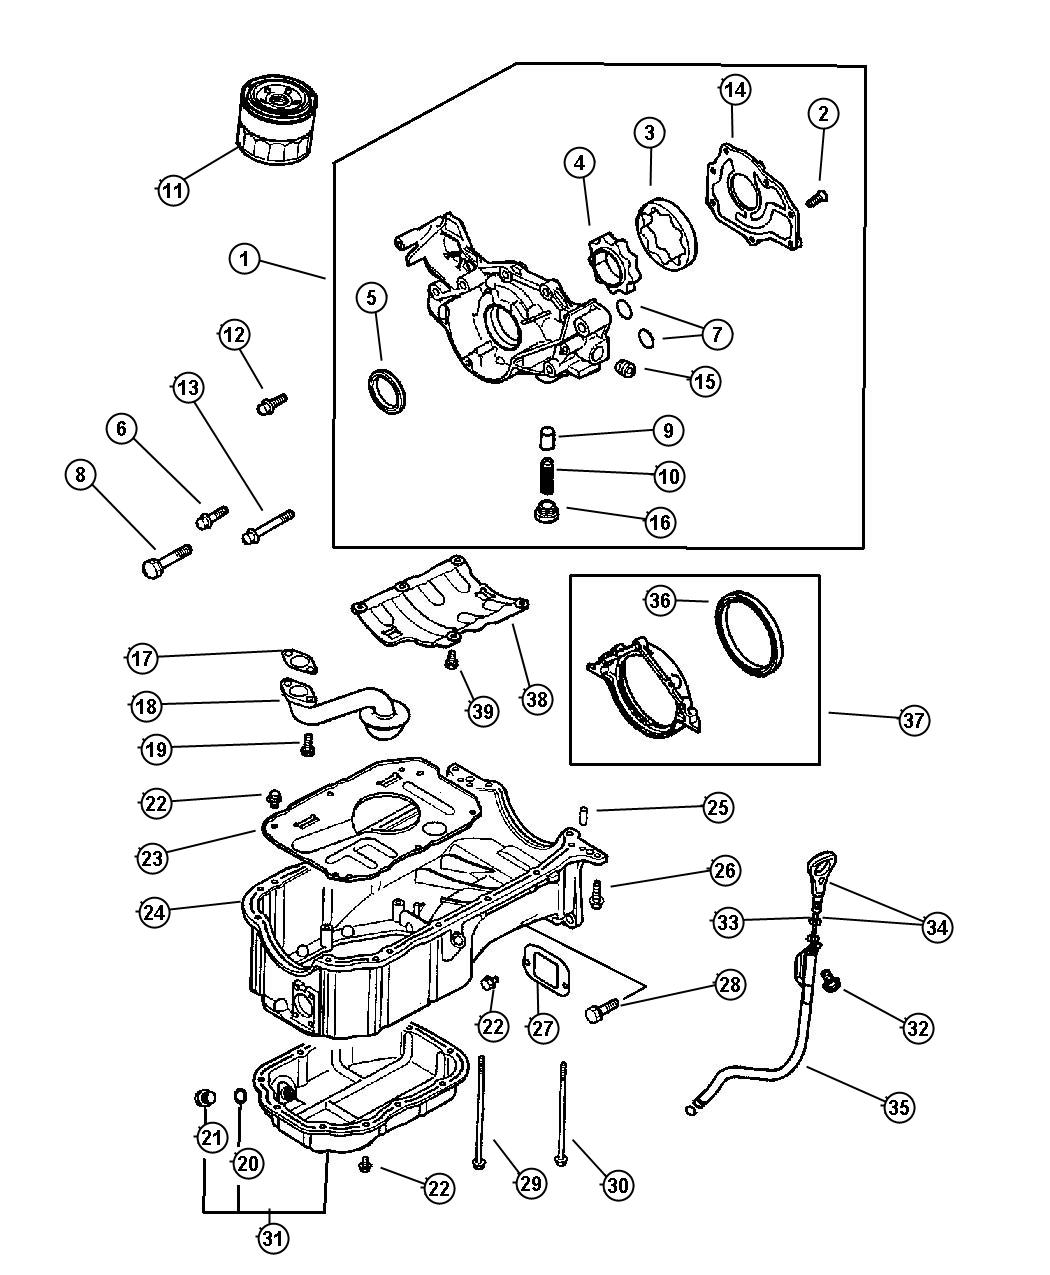 2003 Dodge Stratus Used for: BOLT AND WASHER. M10x35